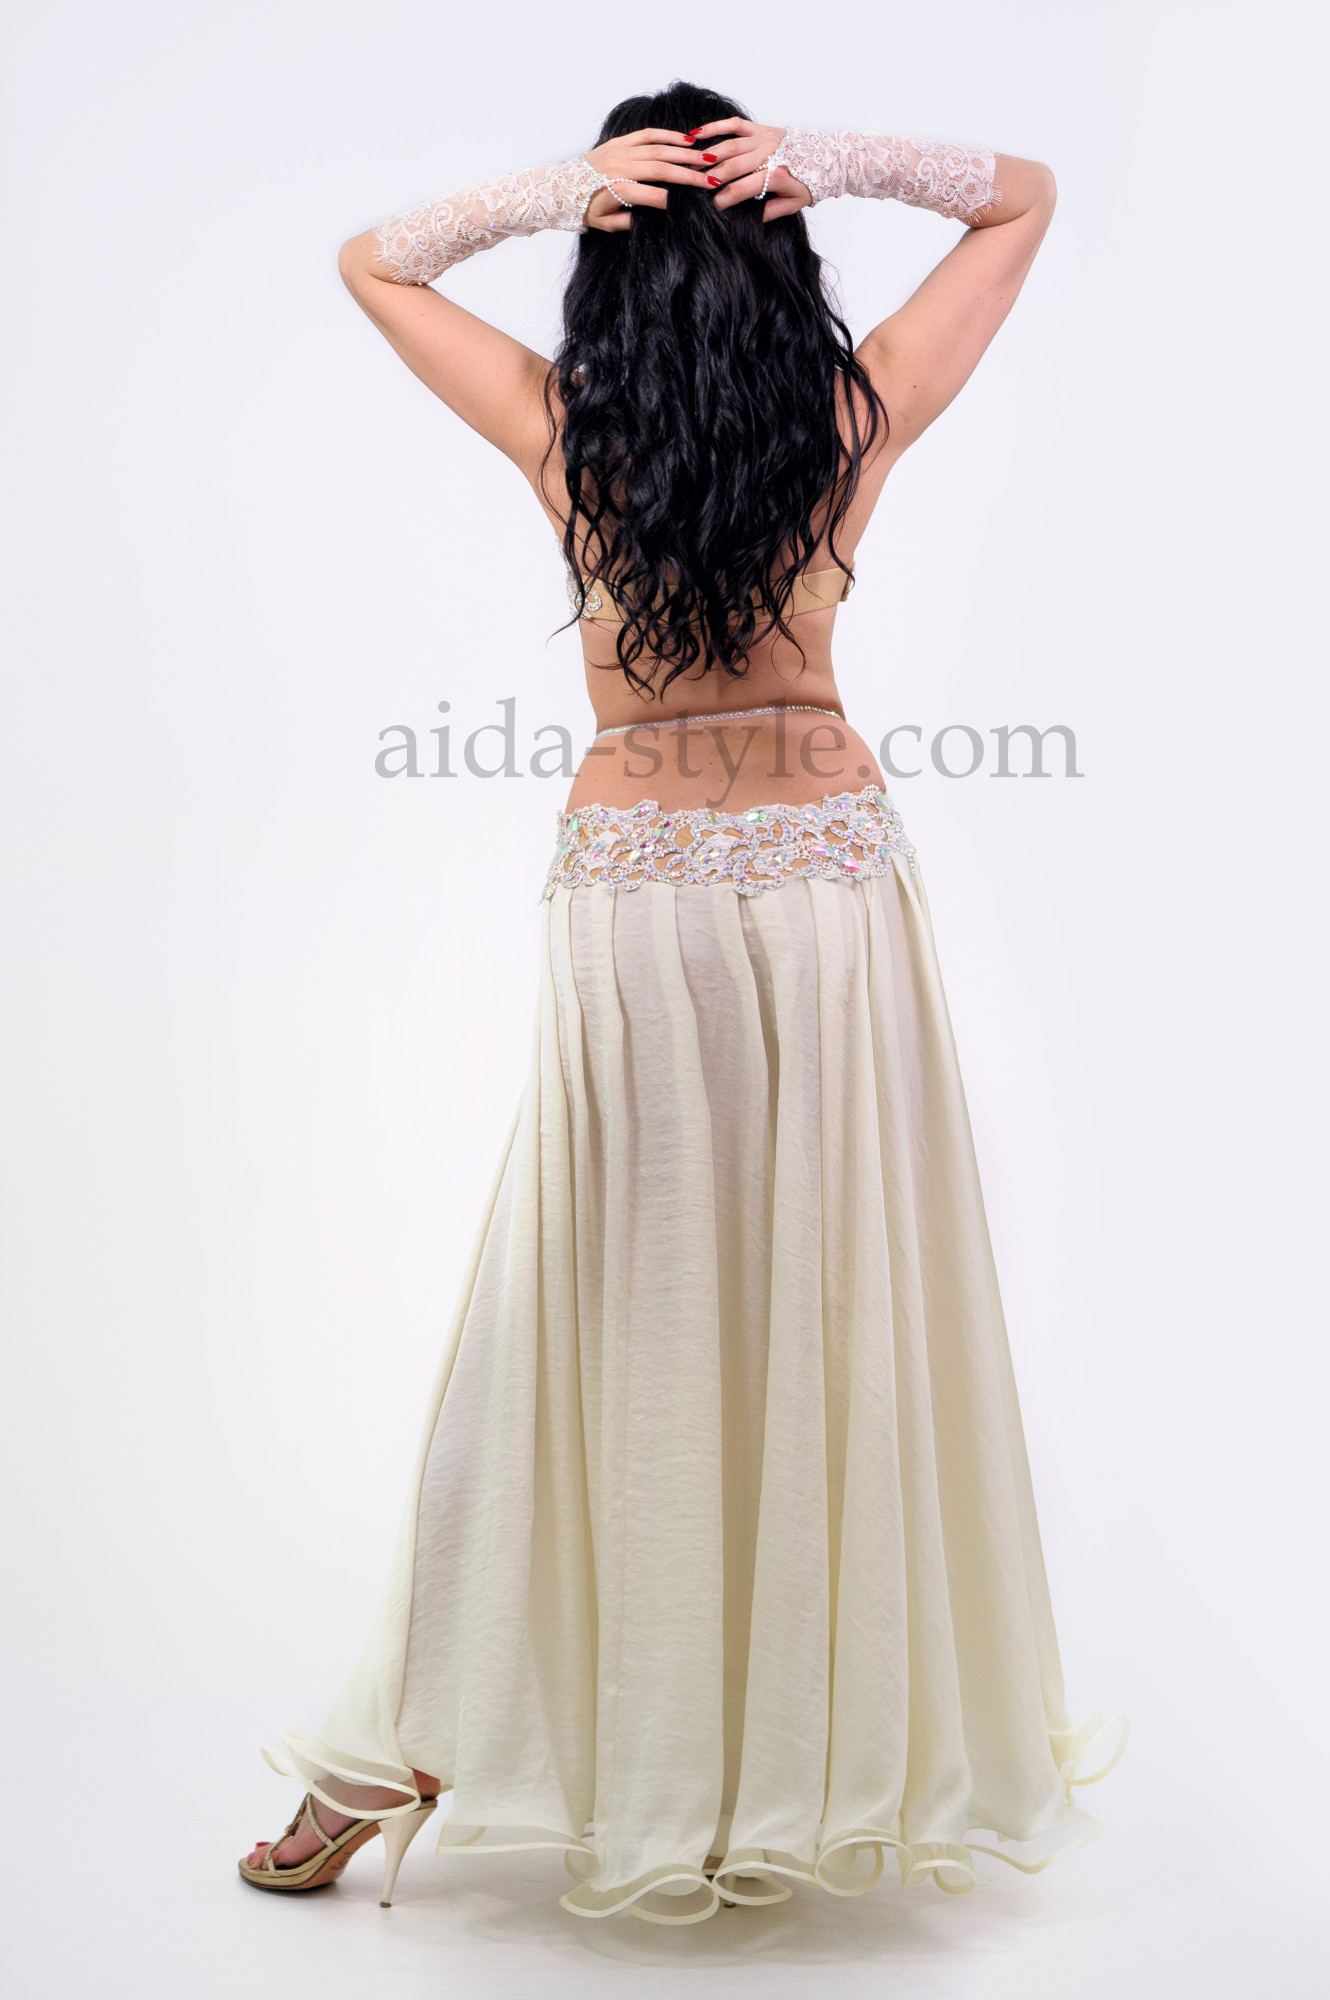 Professional belly dance suit in white milky color. With bouffant skirt and elbow length glowes